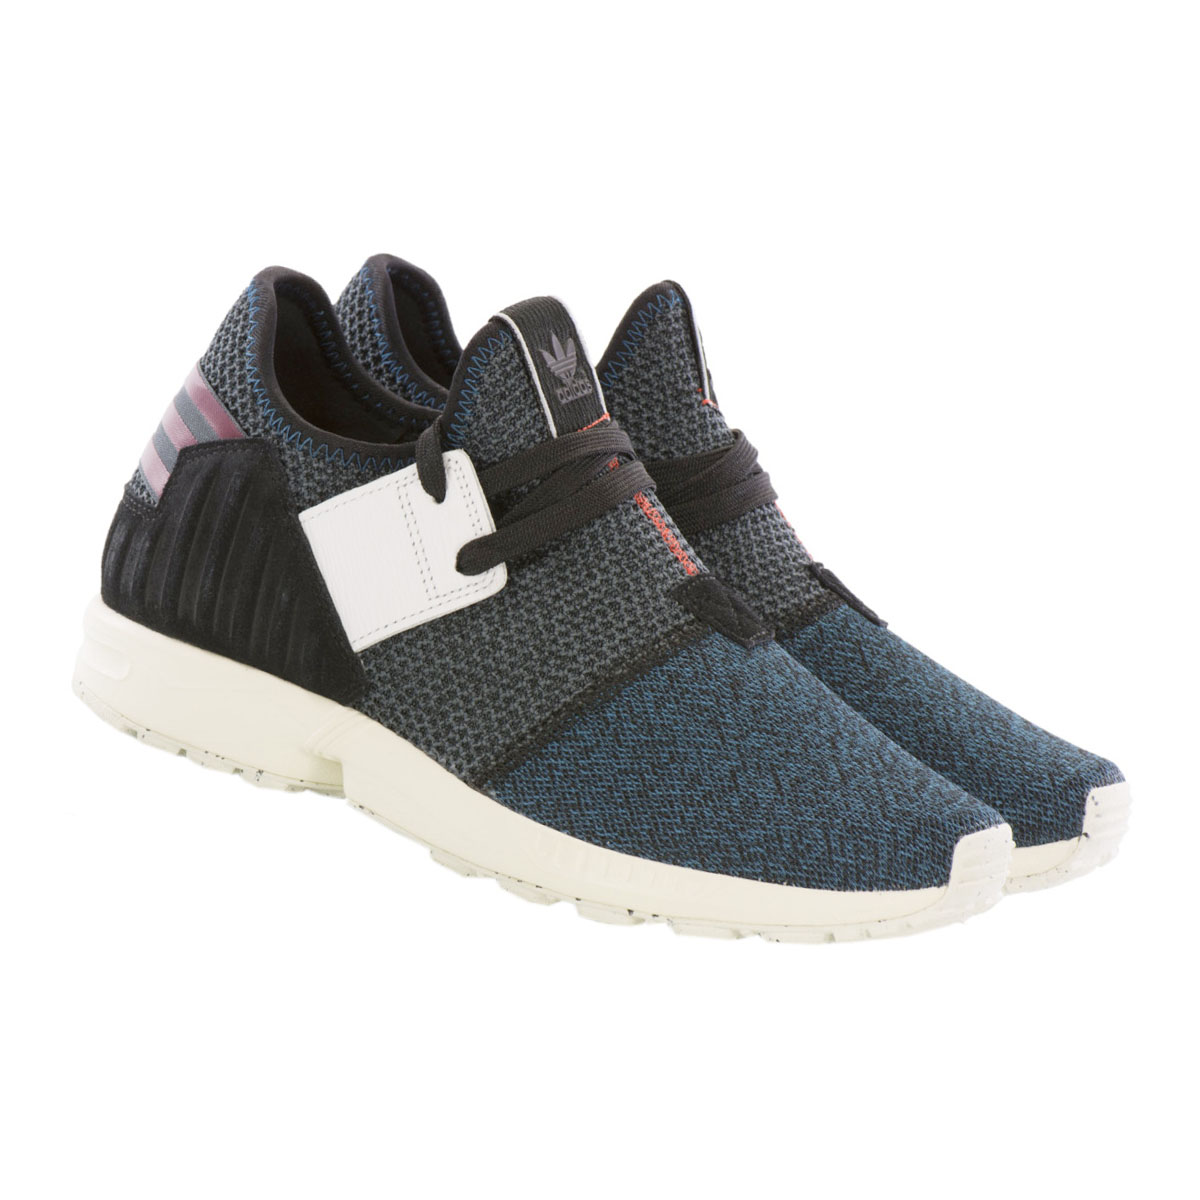 finest selection f8323 69f46 NEW adidas ZX Flux Plus AQ5398 Men Shoes Trainers Sneakers SALE